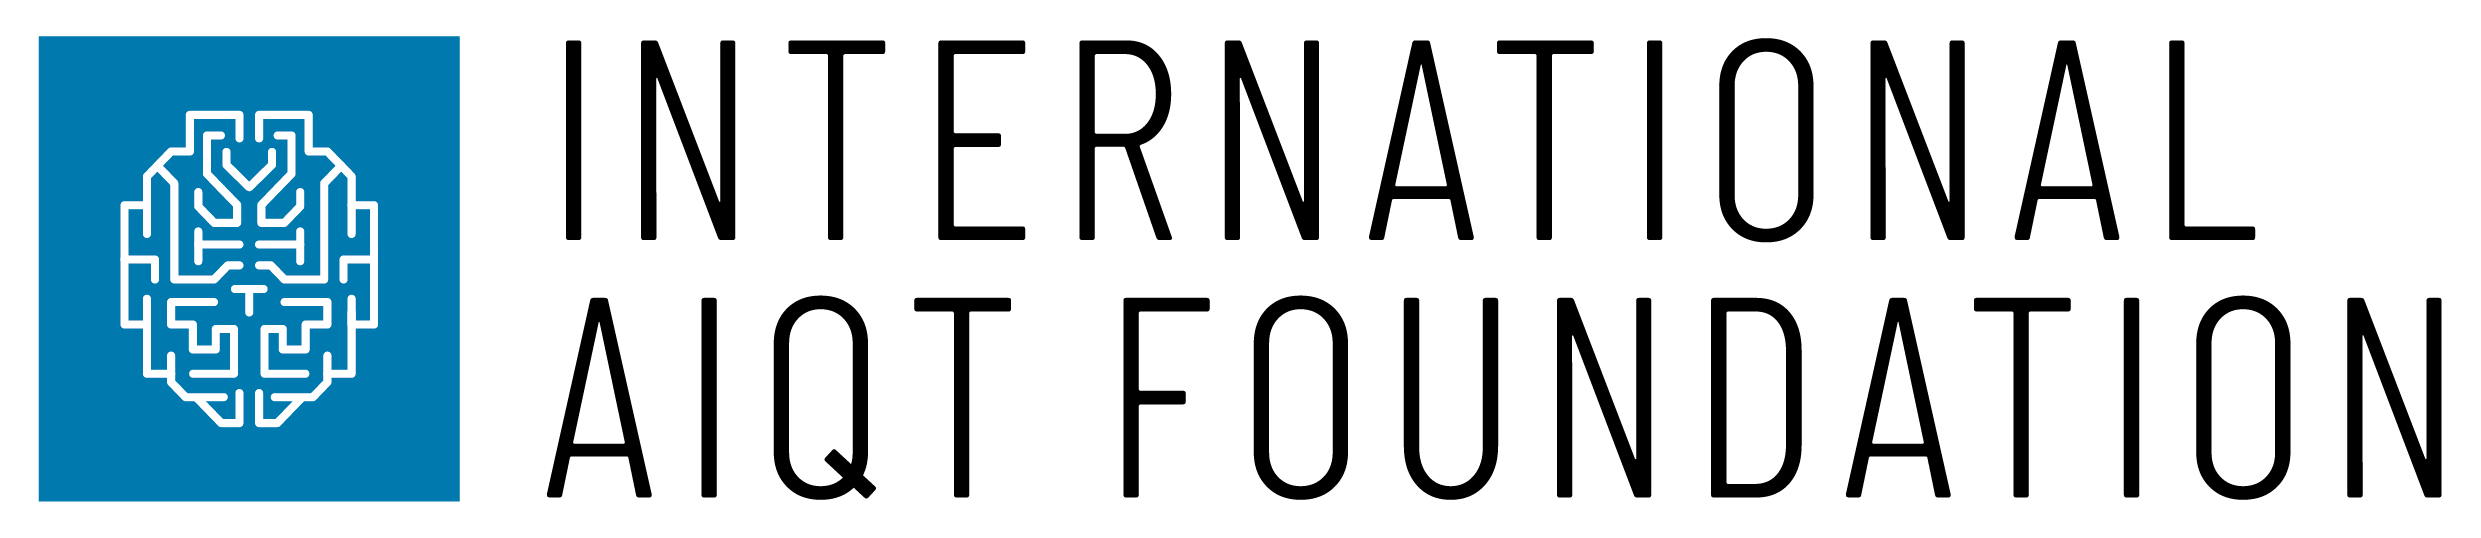 International AIQT Foundation